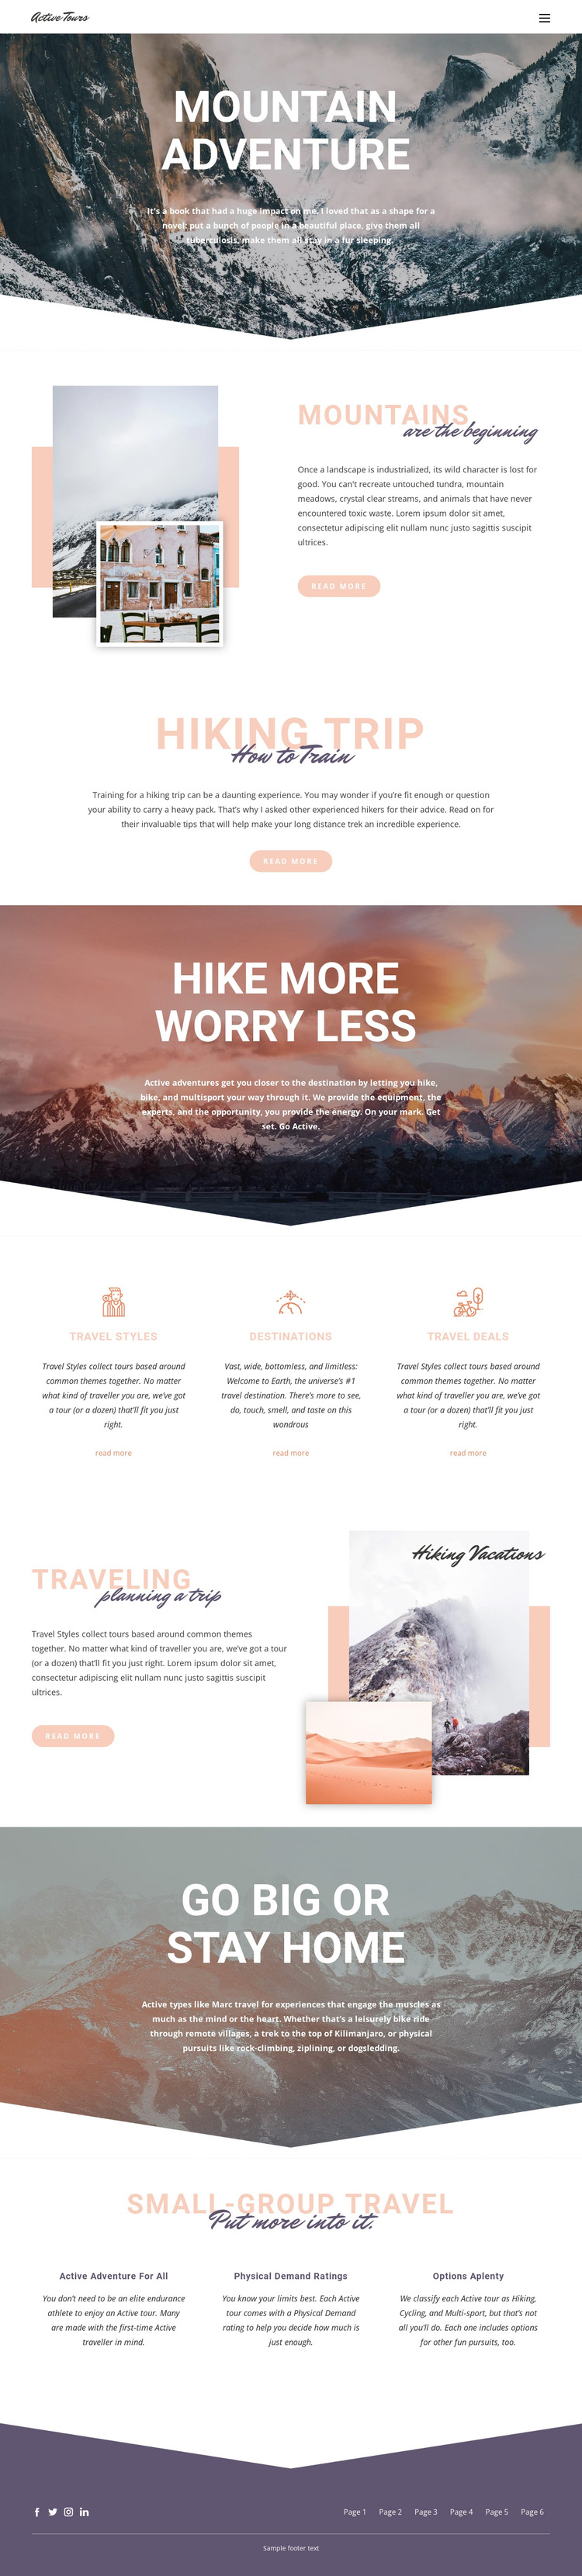 Mountain Adventure HTML5 Template